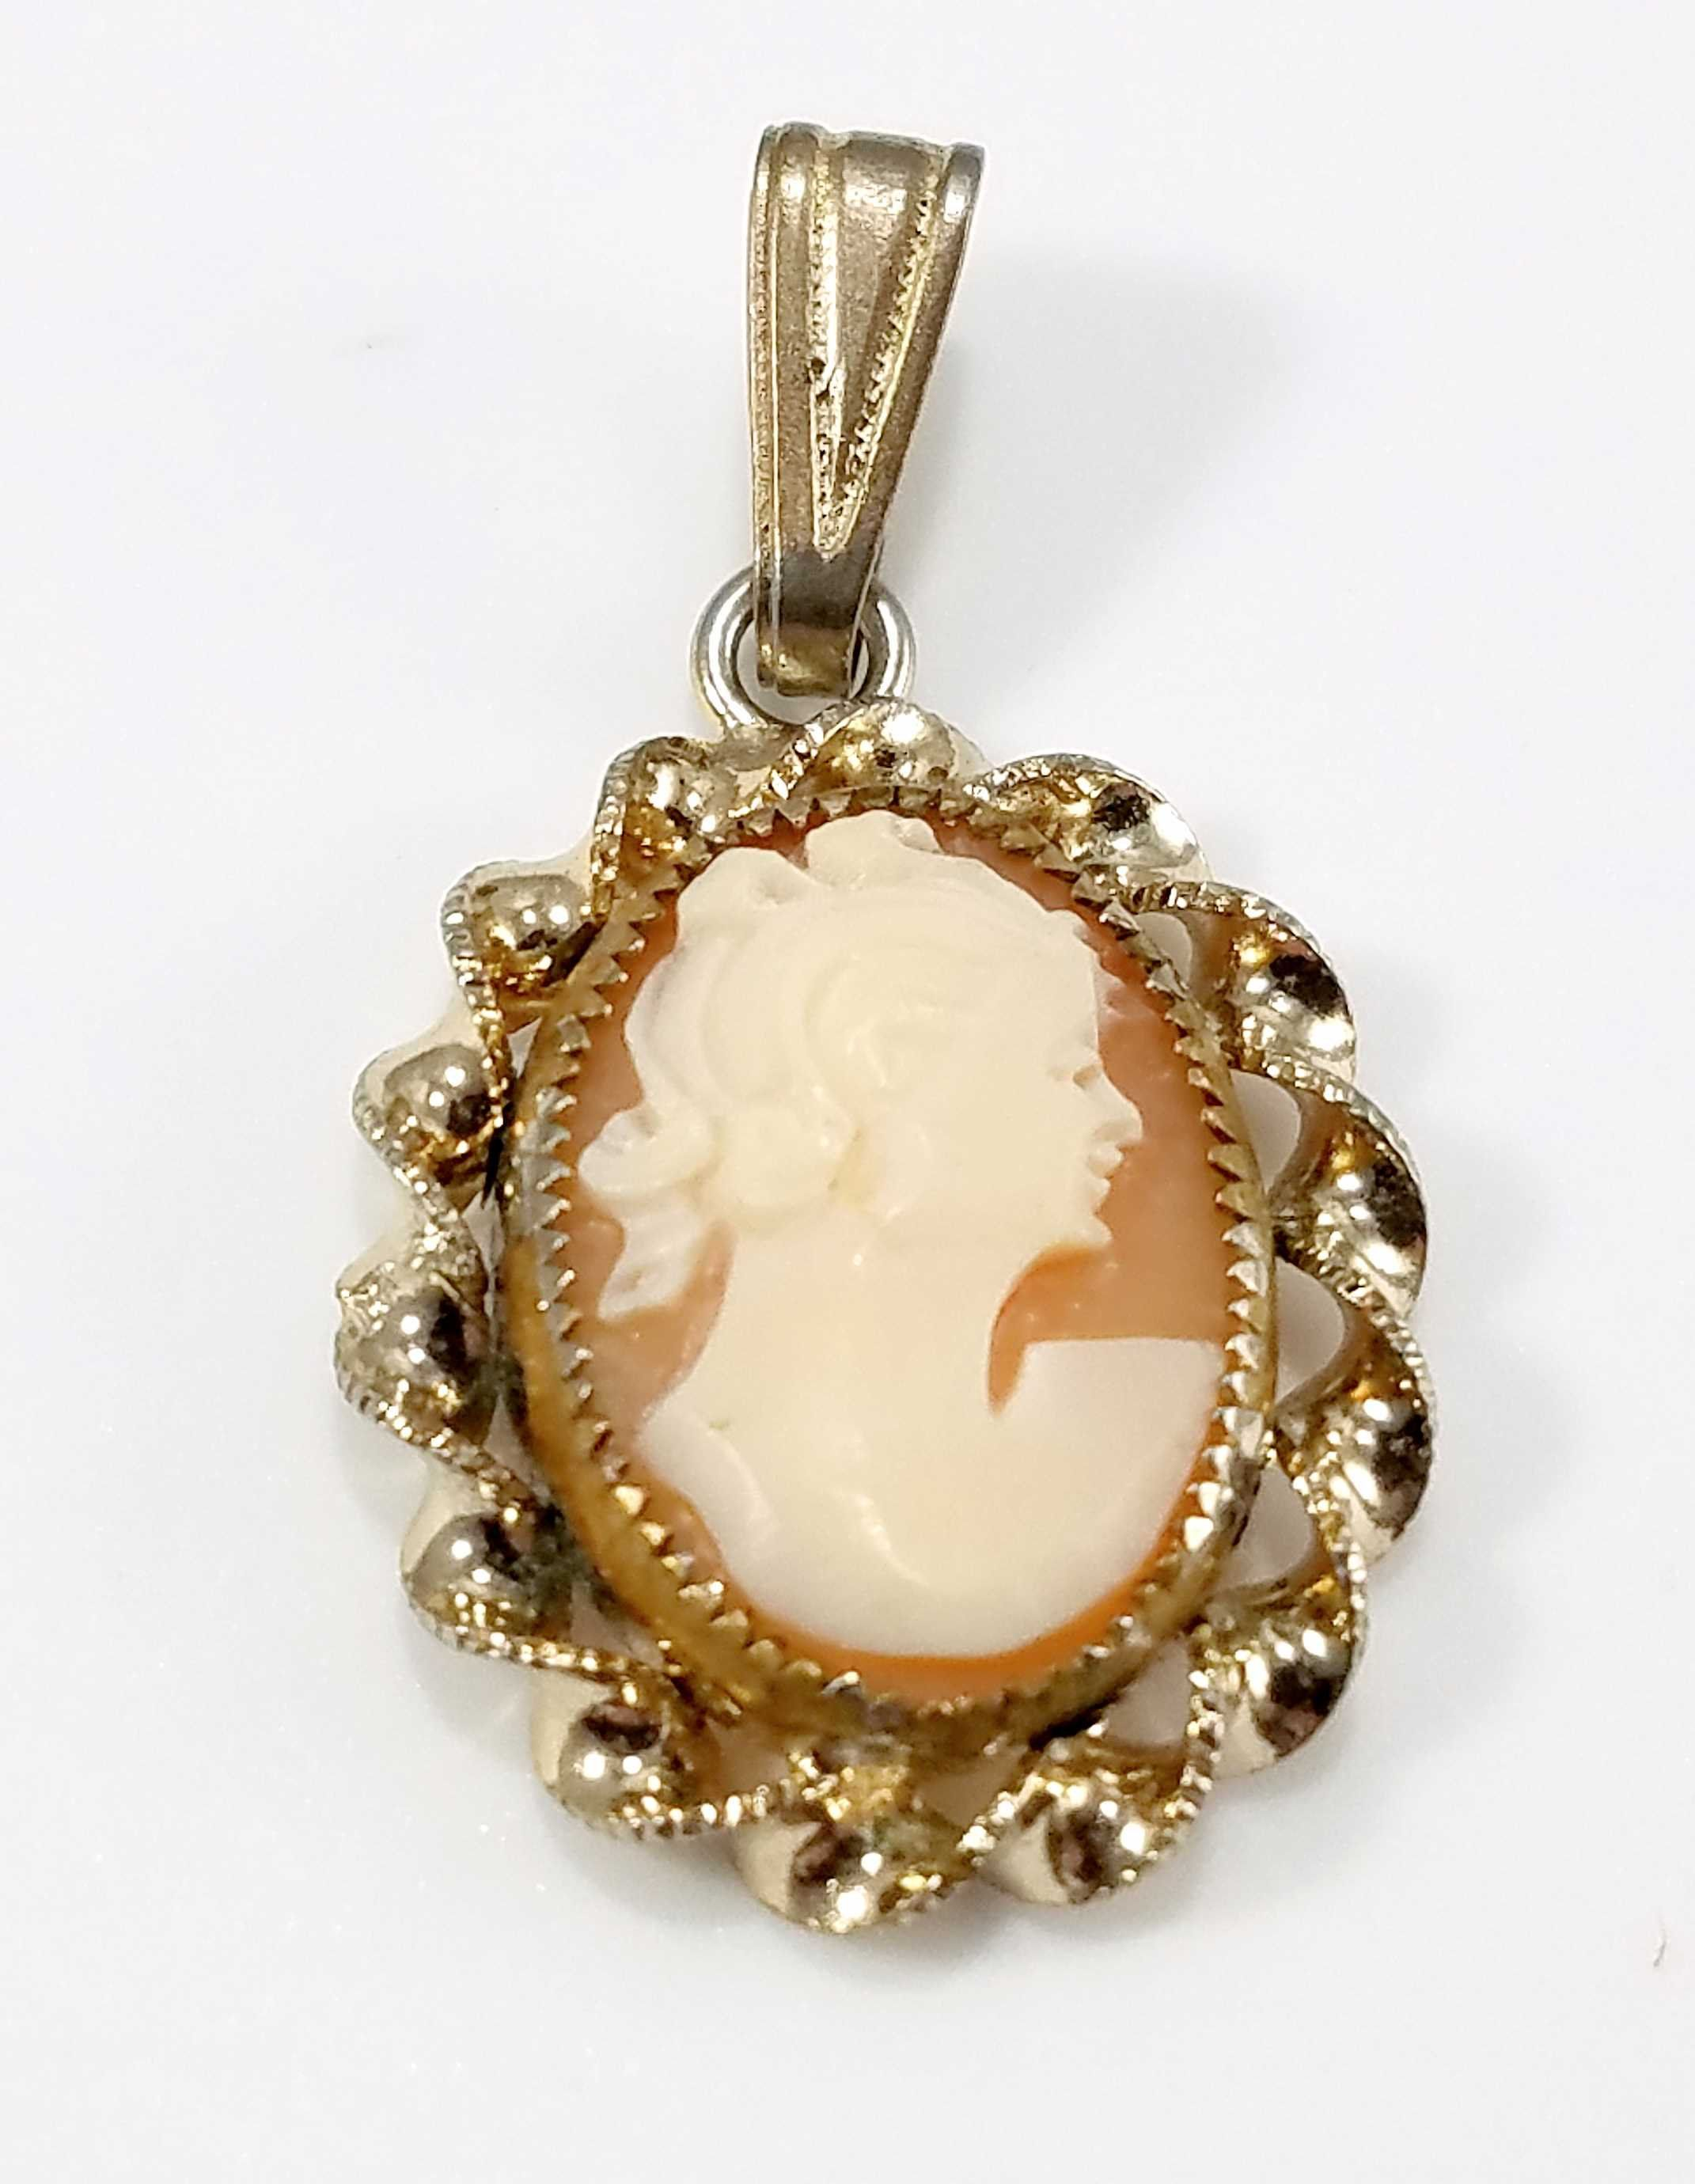 Vintage cameo pendant s or before carved lucite in bezel